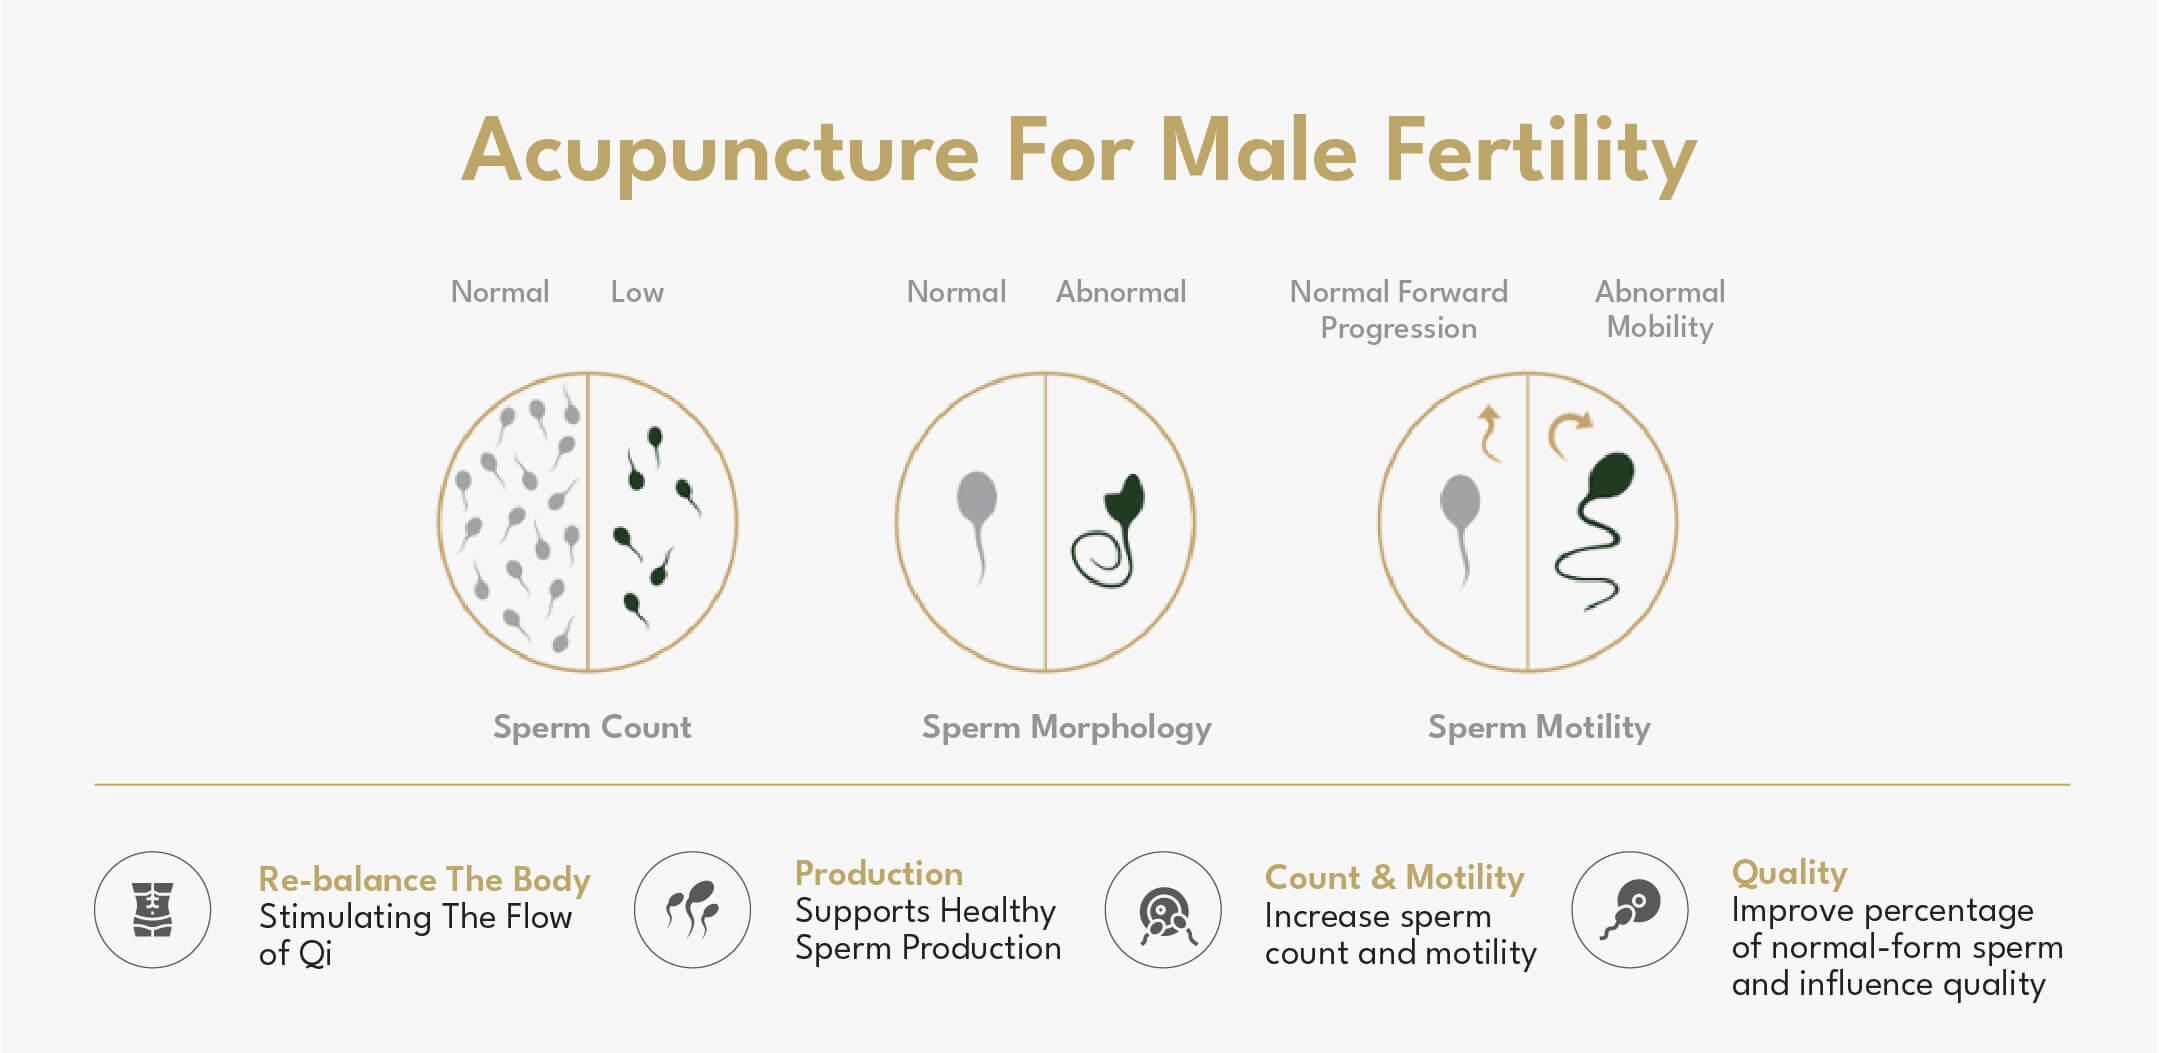 Acupuncture For Male Fertility GinSen